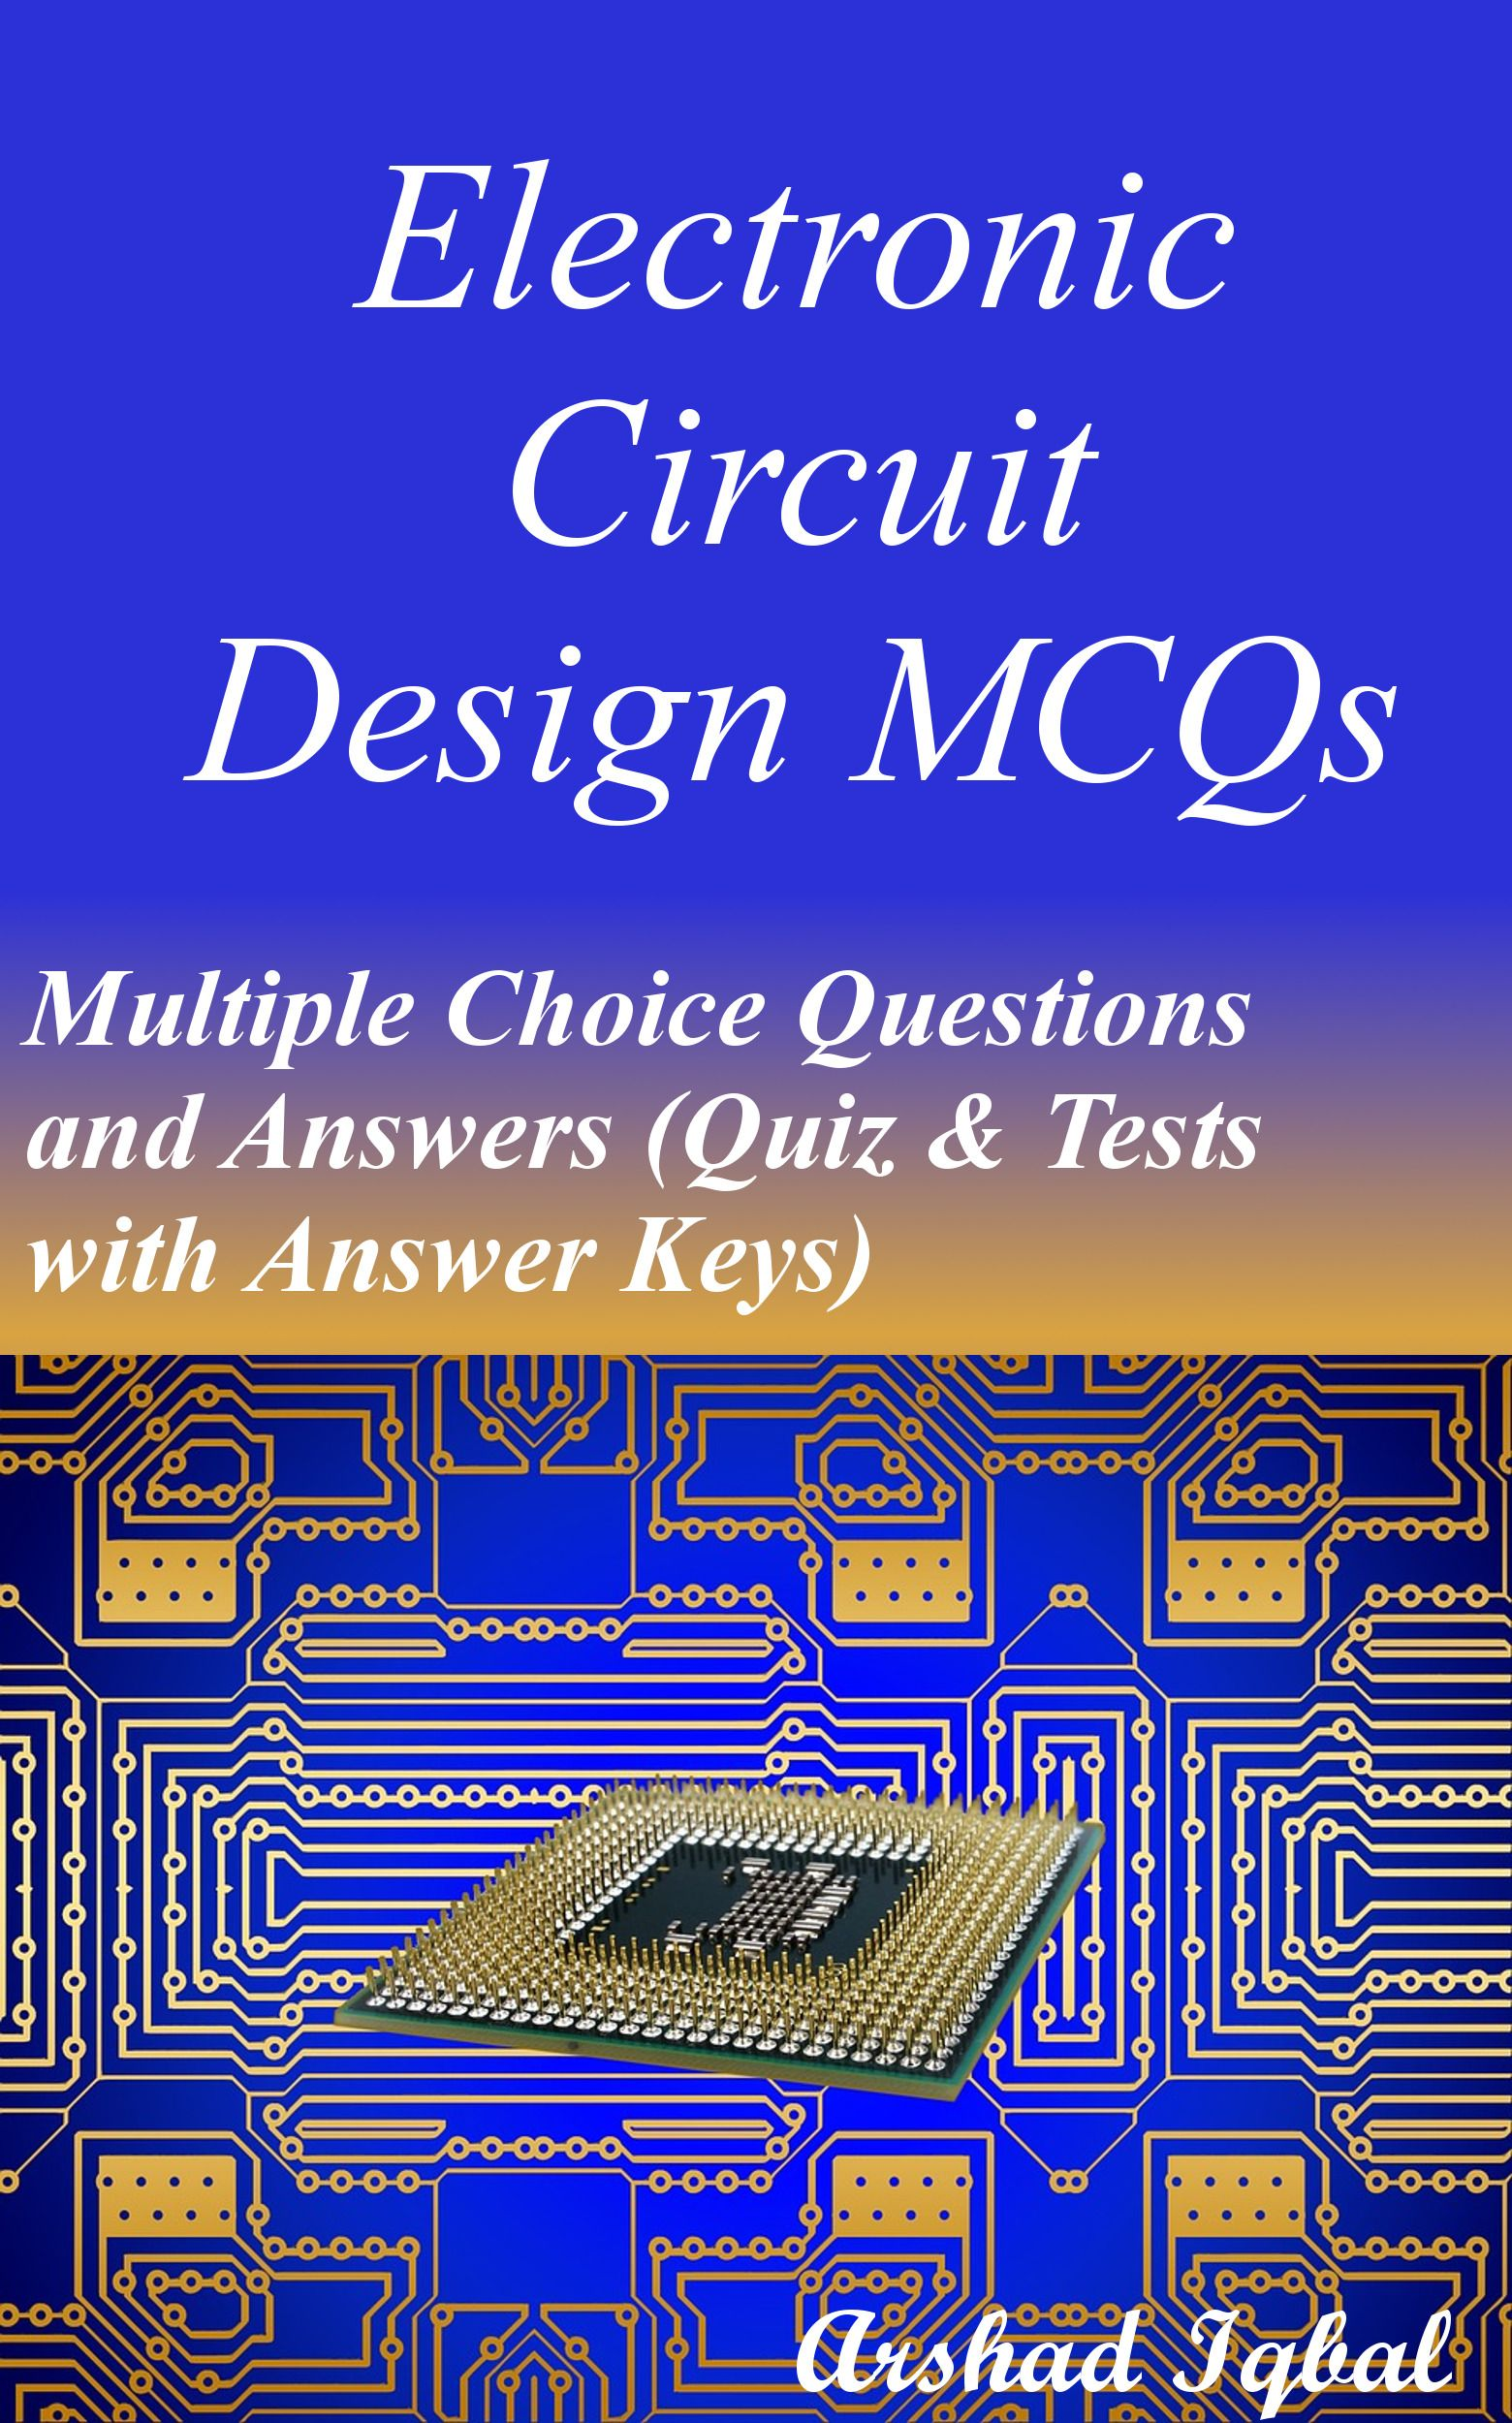 electronic circuit design mcqs has 320 multiple choice questionselectronic circuit design mcqs has 320 multiple choice questions circuit design quiz questions and answers